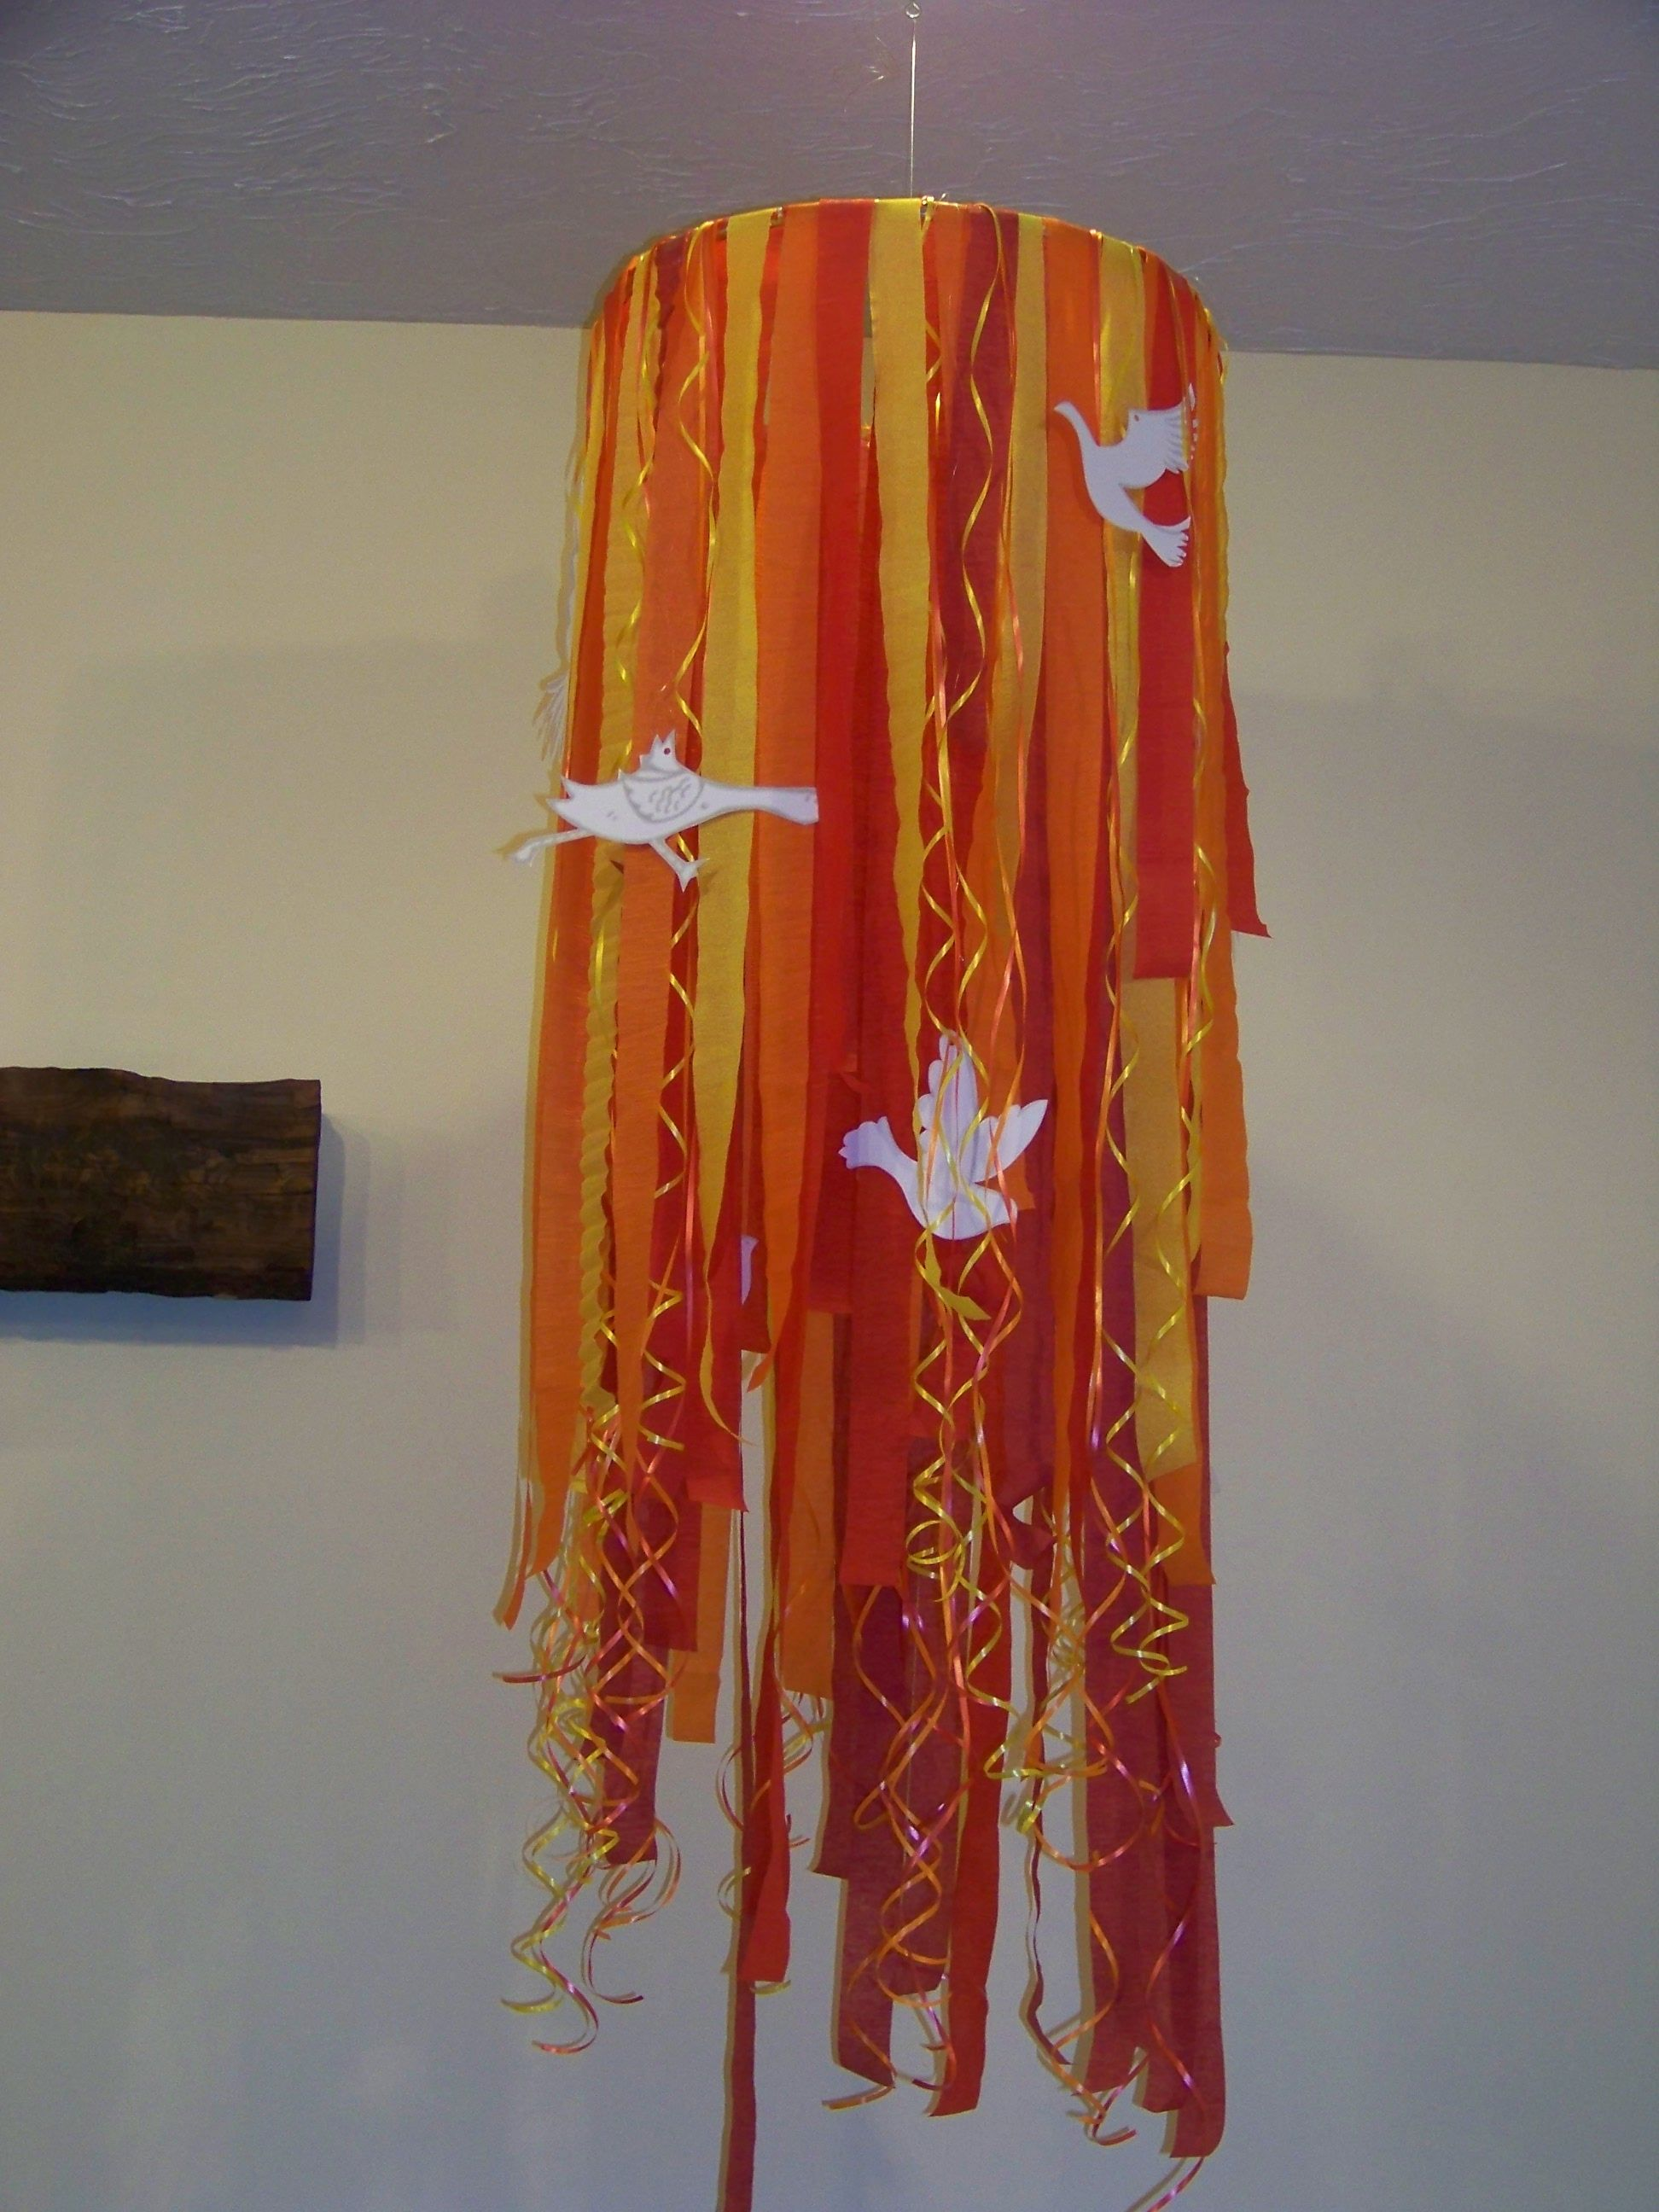 Pentecost Flames for Sunday Service . . . made with a small hula hoop, fishing line, crepe paper streamers, curling ribbons & card stock cut out doves.